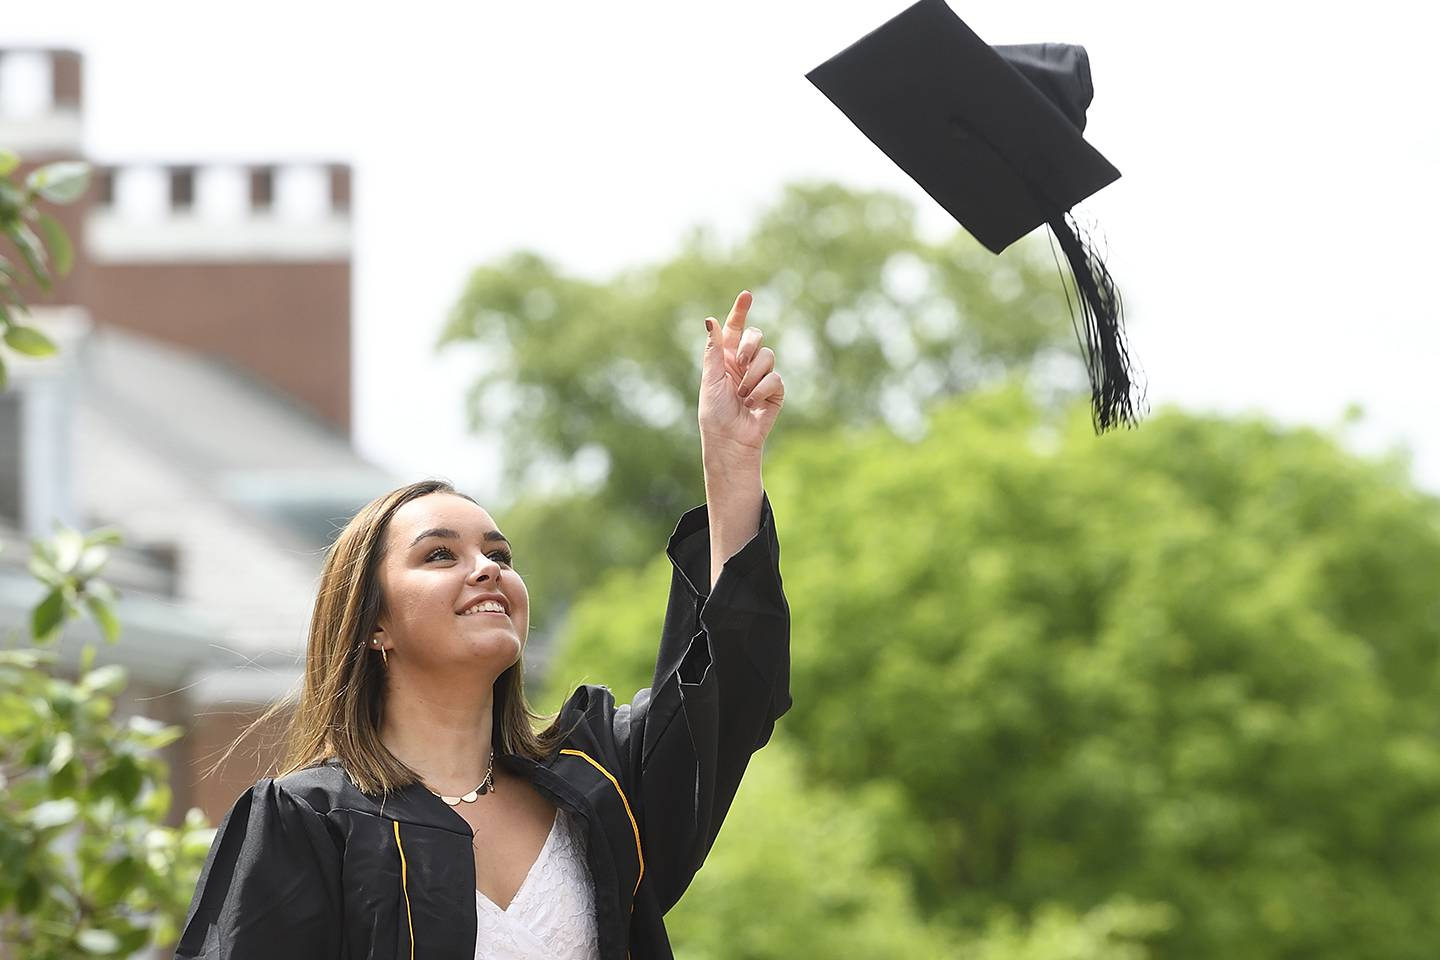 A student throws her graduation cap